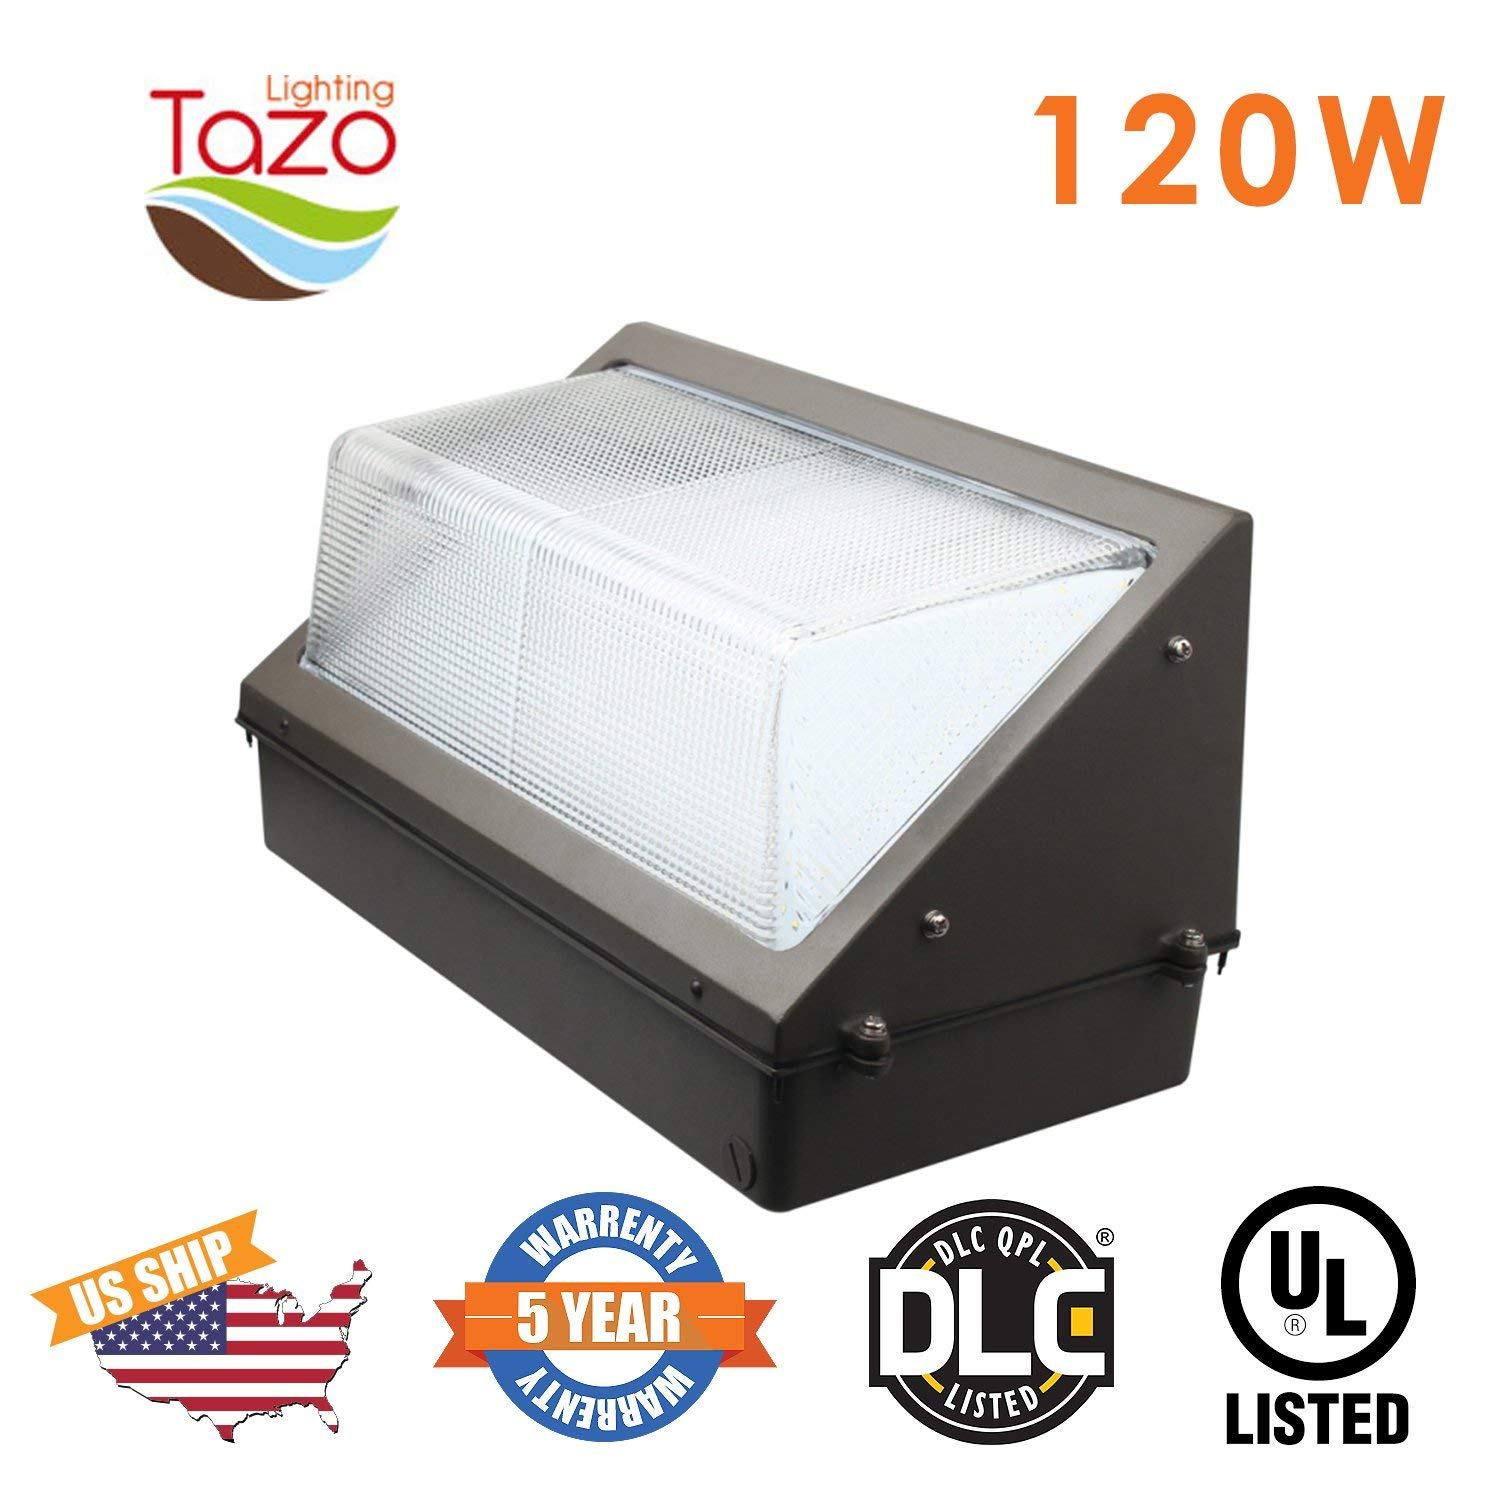 TAZO LIGHTING LED Wall Pack Light 120W, 2700-7000K LED Security Lighting Fixture, 9600-10800 Lumens, IP54 Outdoor Industrial and Commercial Aare Lighting (UL-Listed)